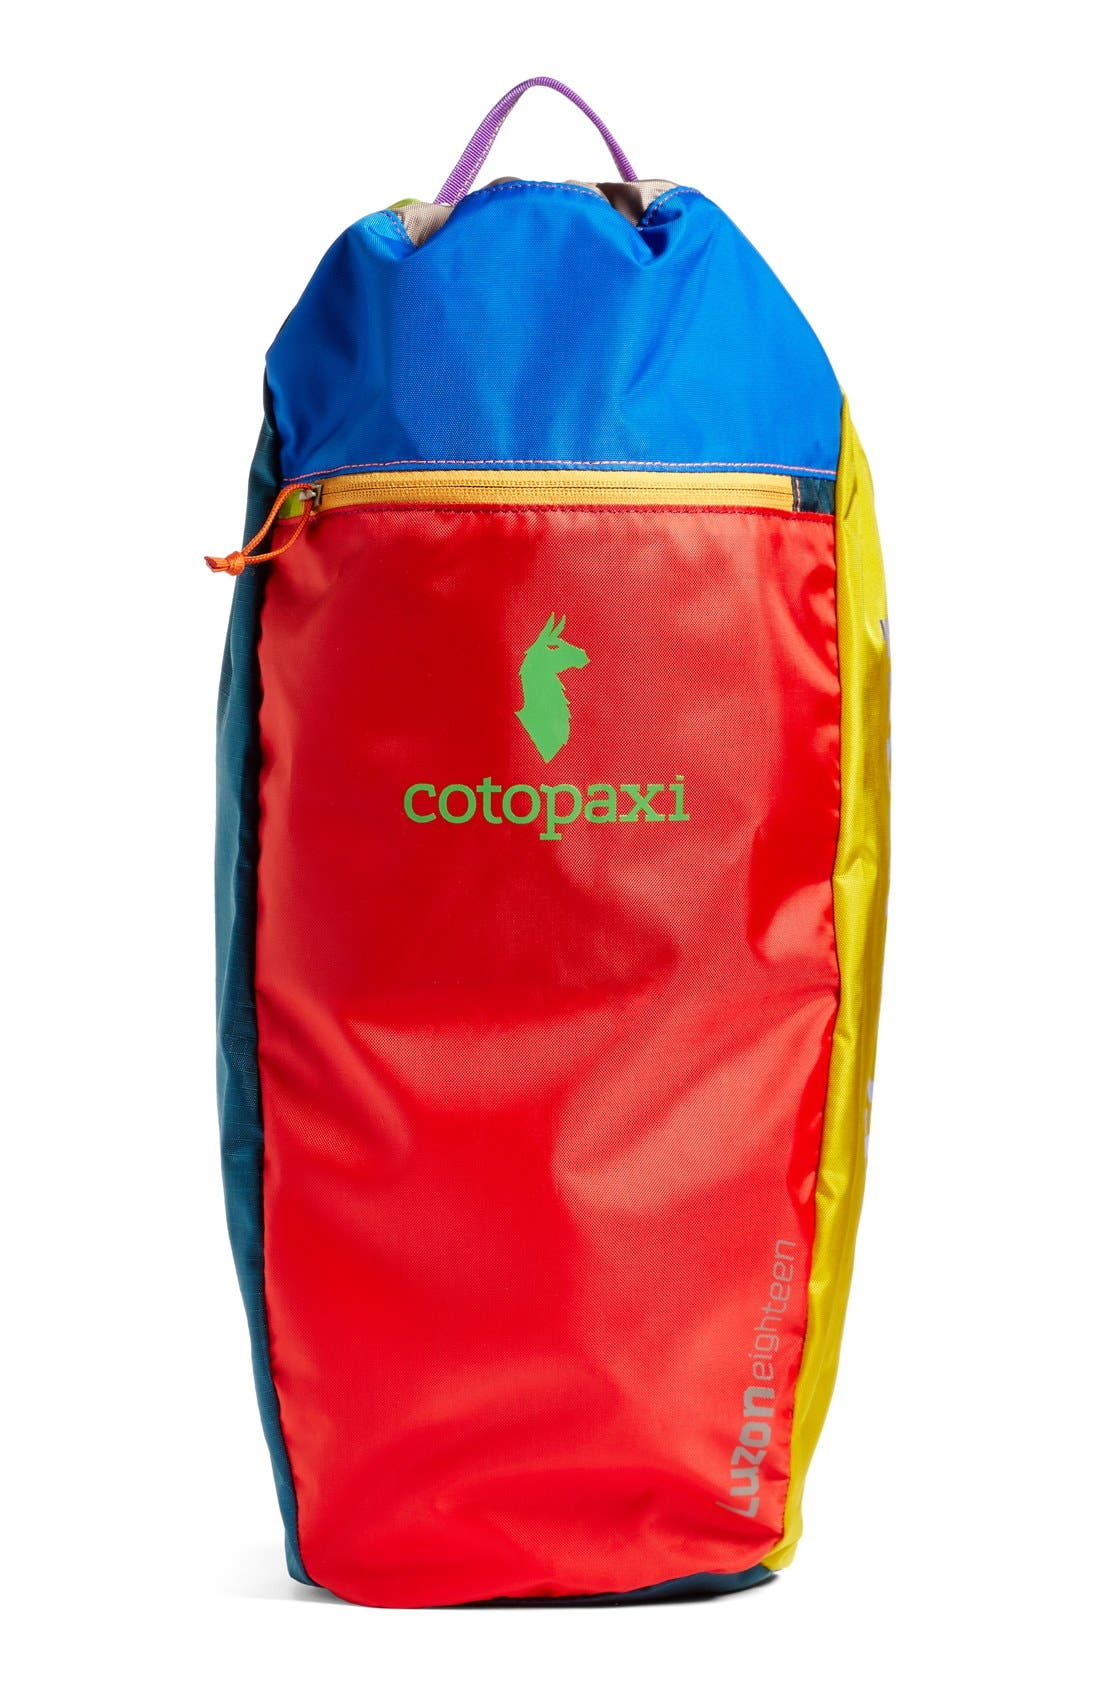 Cotopaxi Luzon Del Dia One of a Kind Ripstop Nylon Daypack